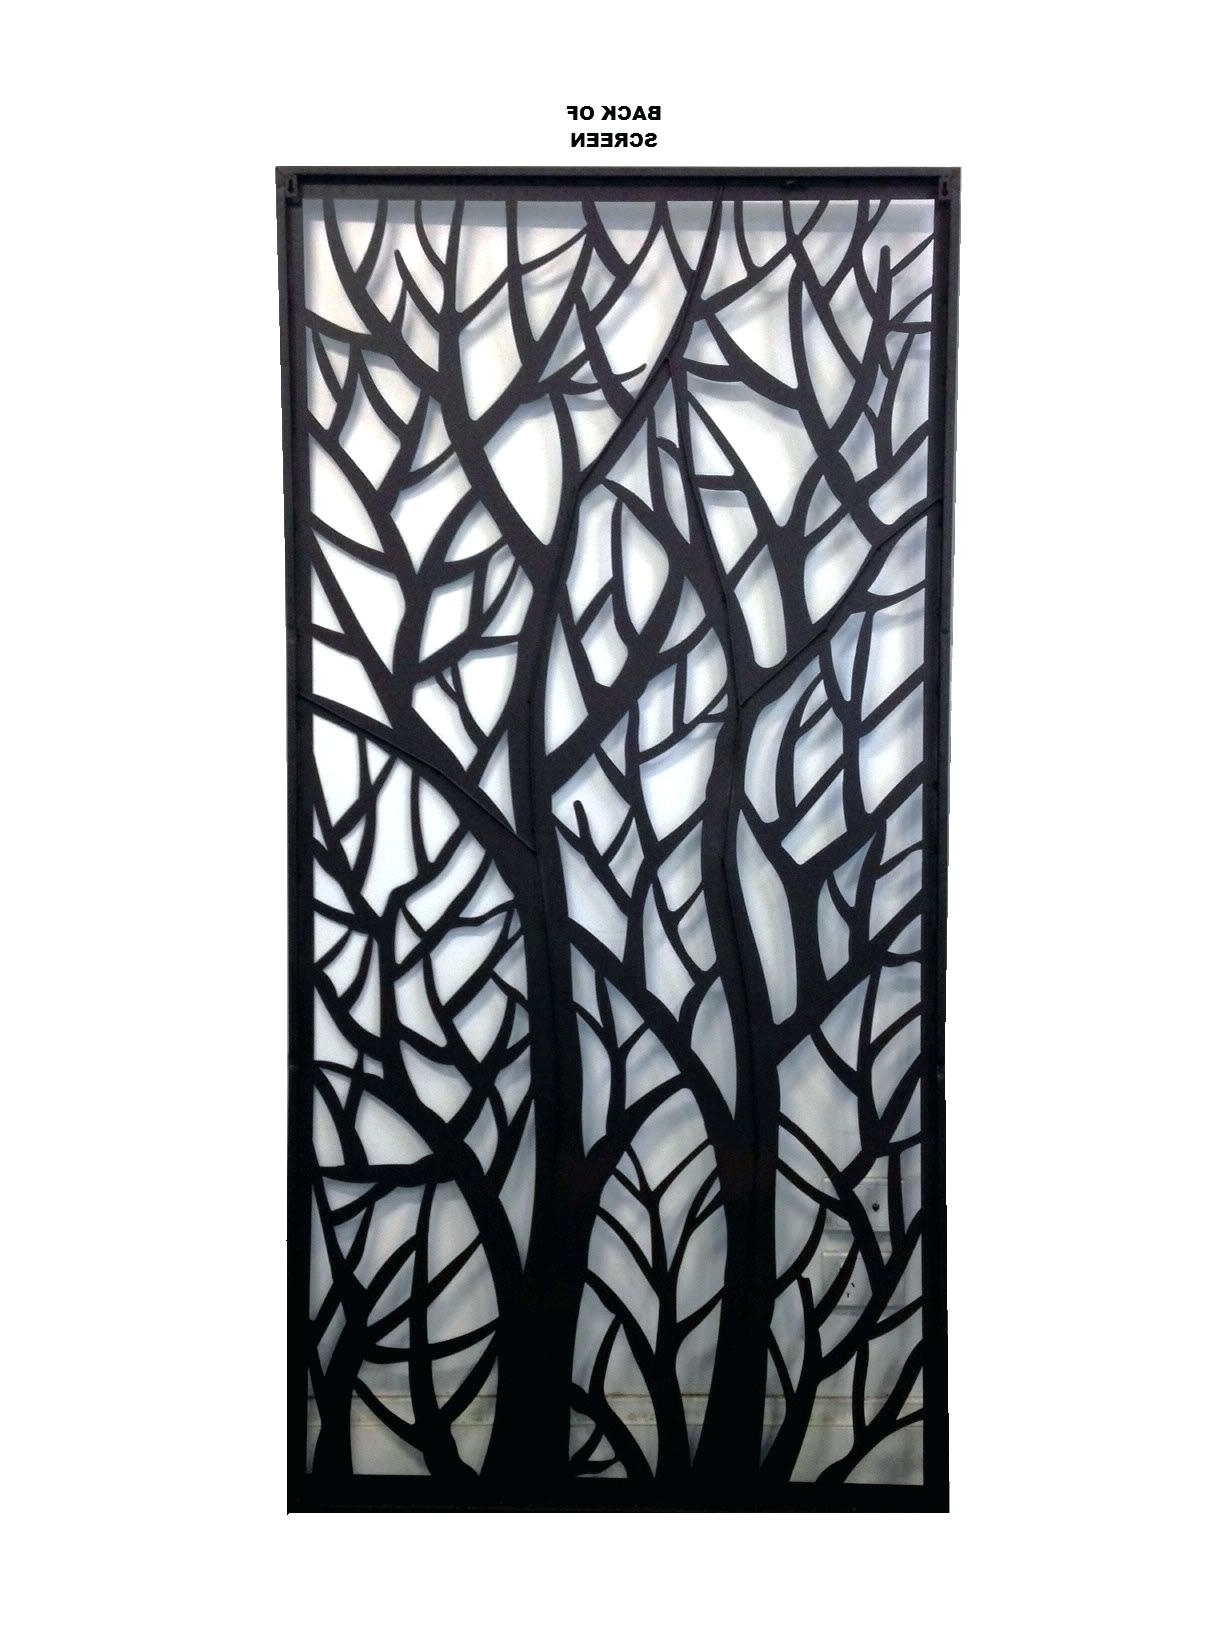 Decorative Metal Screens Wall Art Garden Ebaydecorative Bunnings With Regard To Well Liked Decorative Outdoor Metal Wall Art (View 7 of 15)